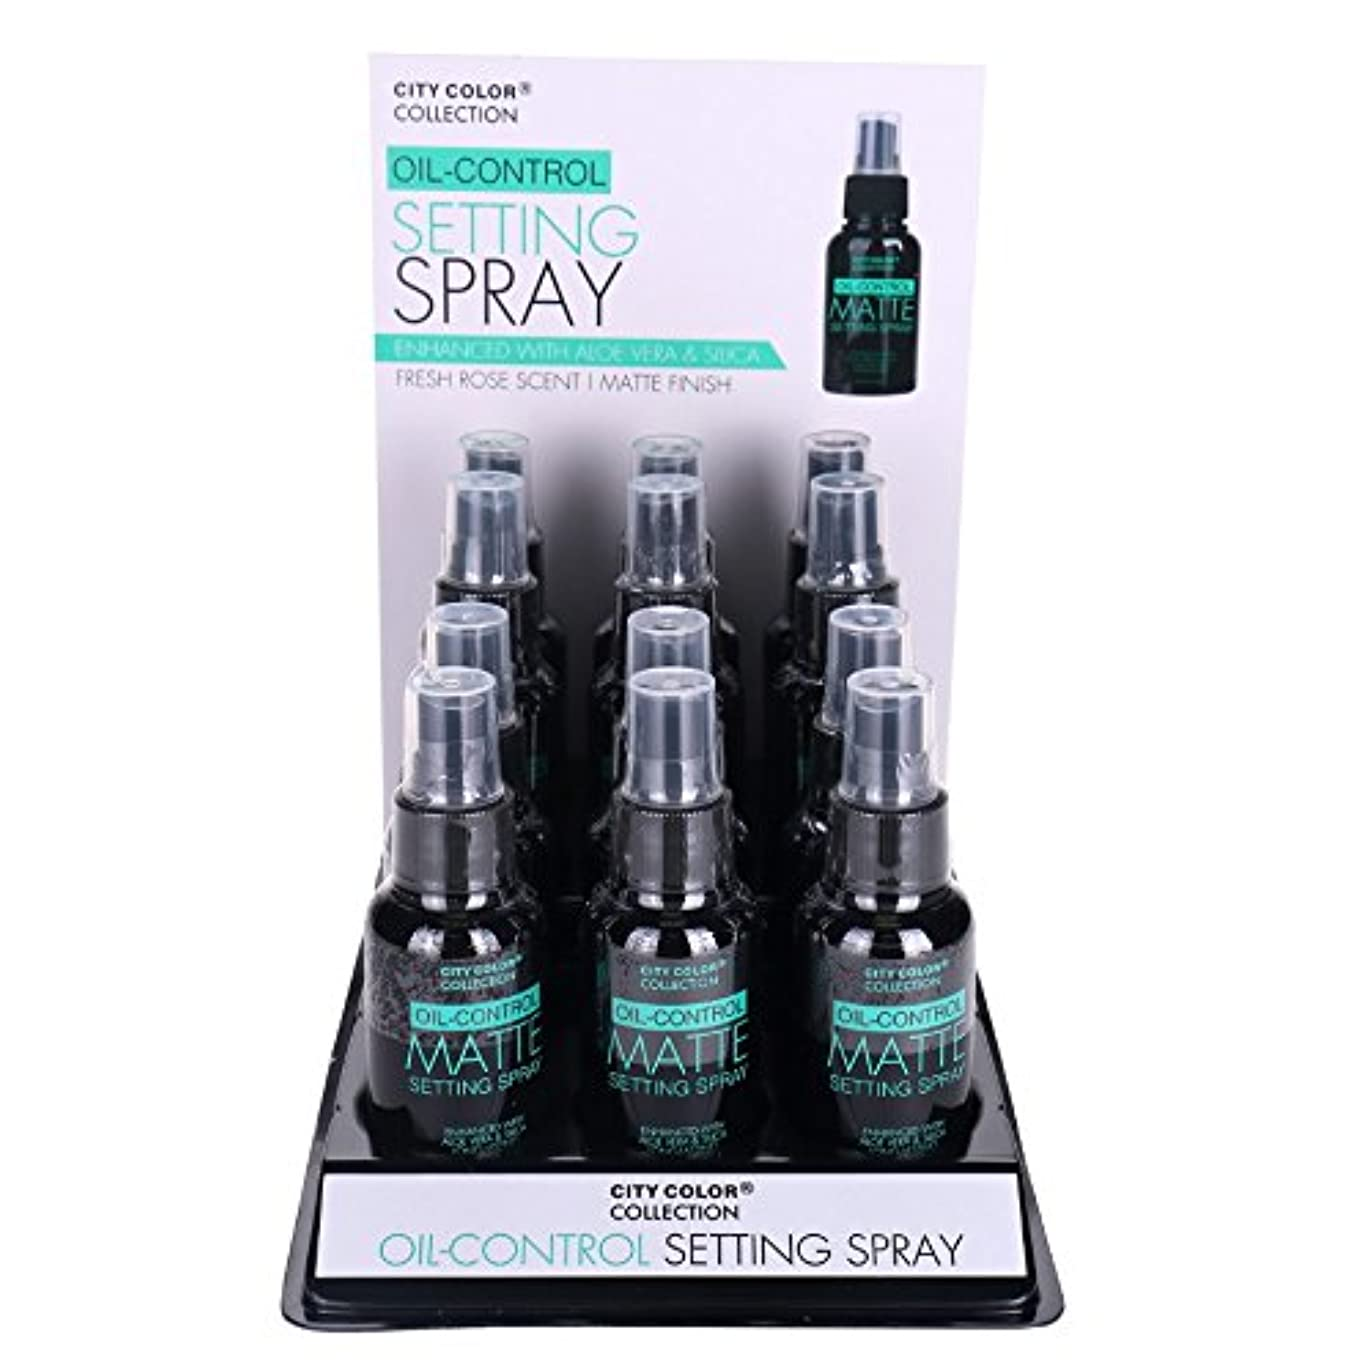 CITY COLOR Oil-Control Matte Setting Spray Display Case 12 Pieces (並行輸入品)